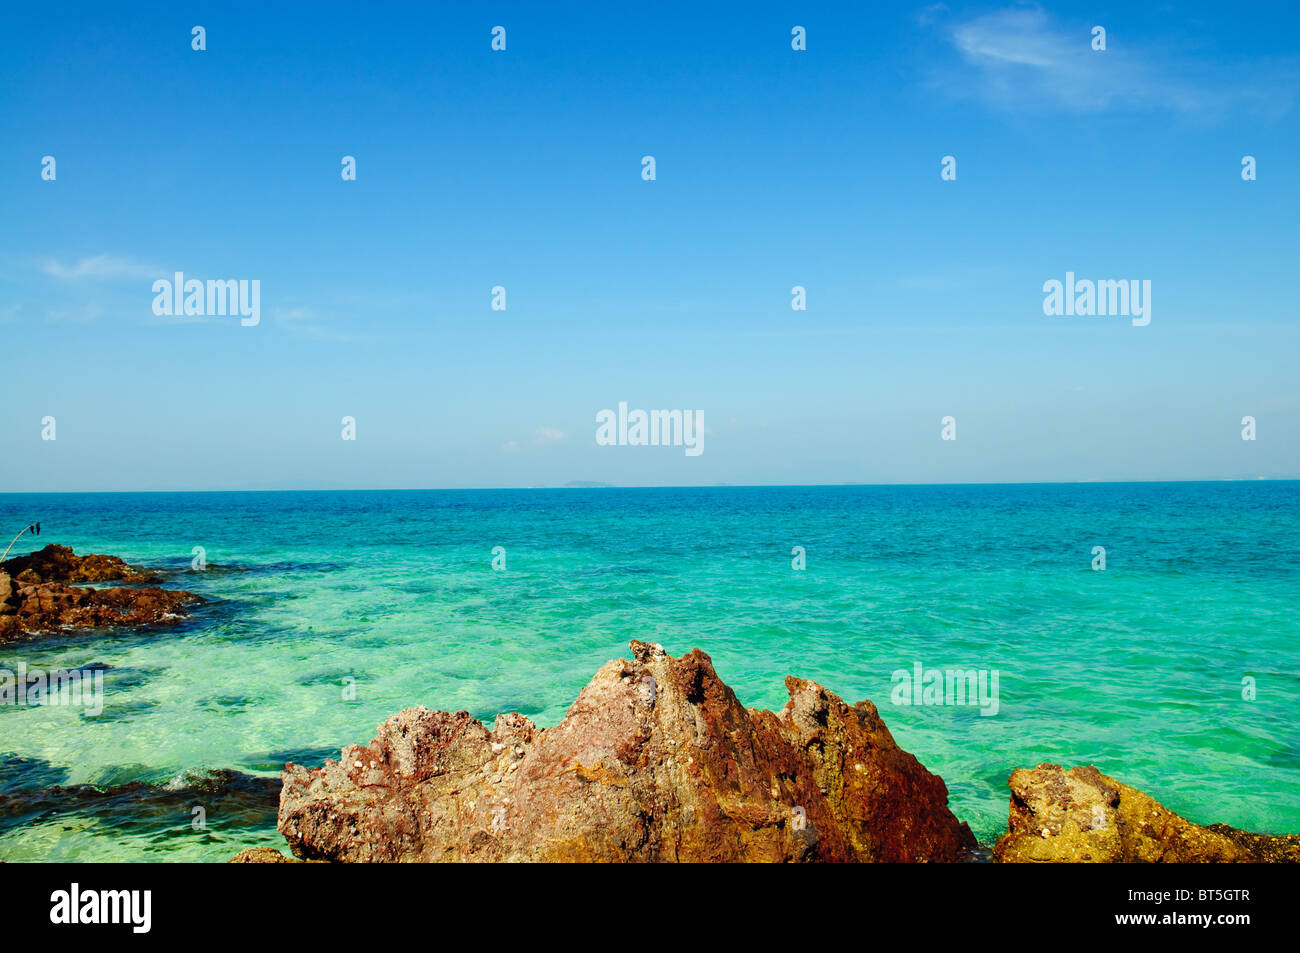 Tropical landscape - sea shore on desert island - Stock Image